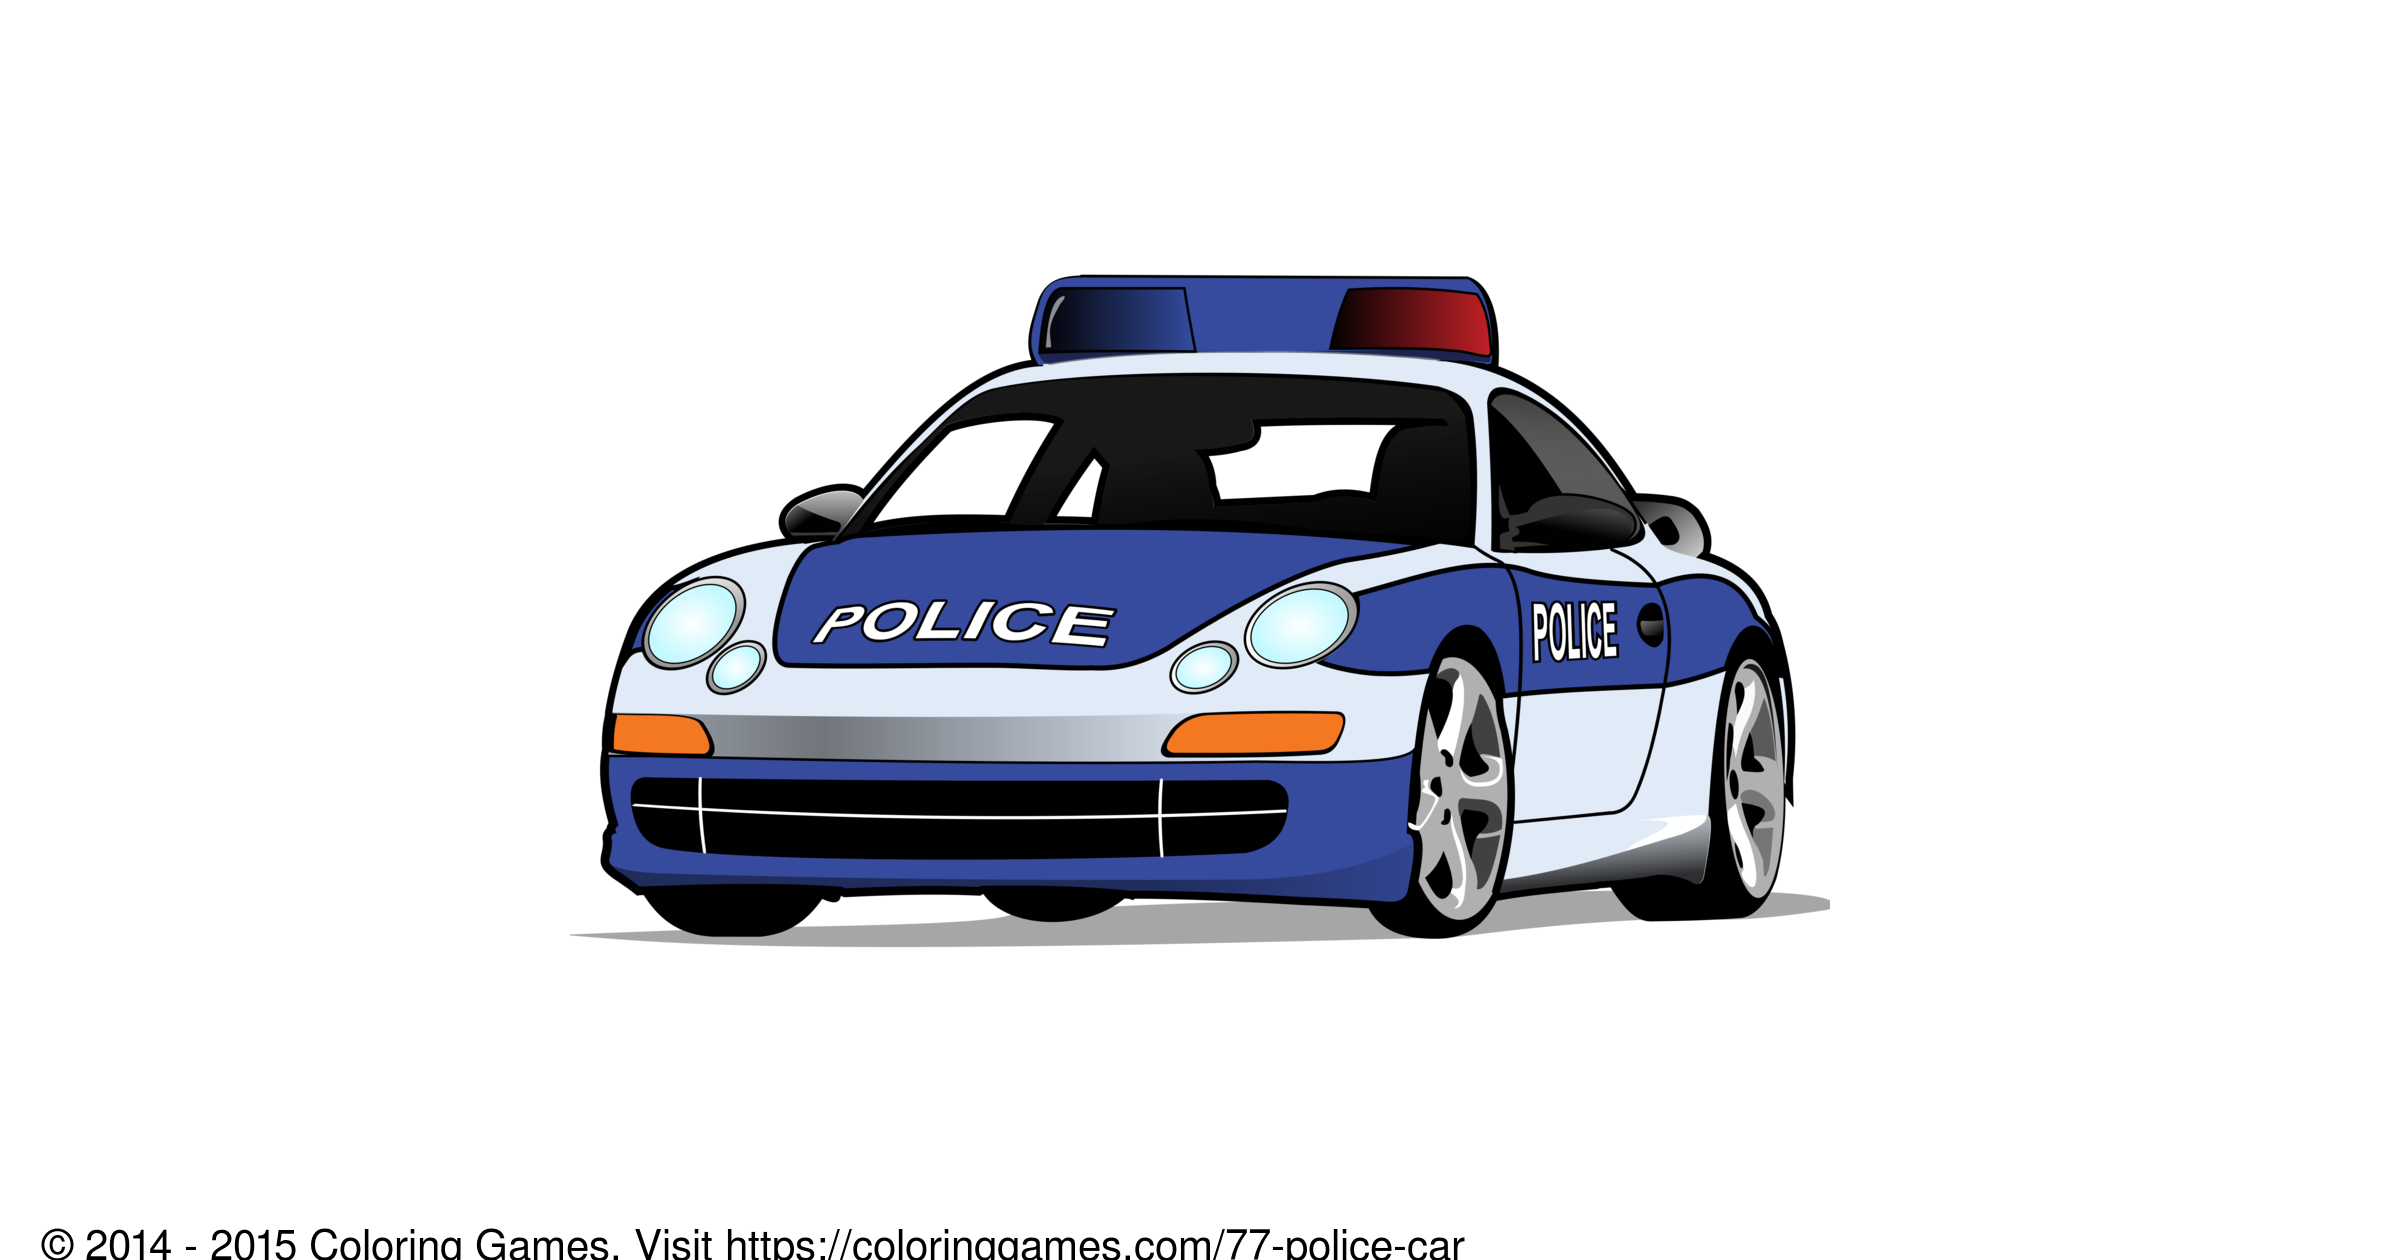 police car coloring games and coloring pages. Black Bedroom Furniture Sets. Home Design Ideas